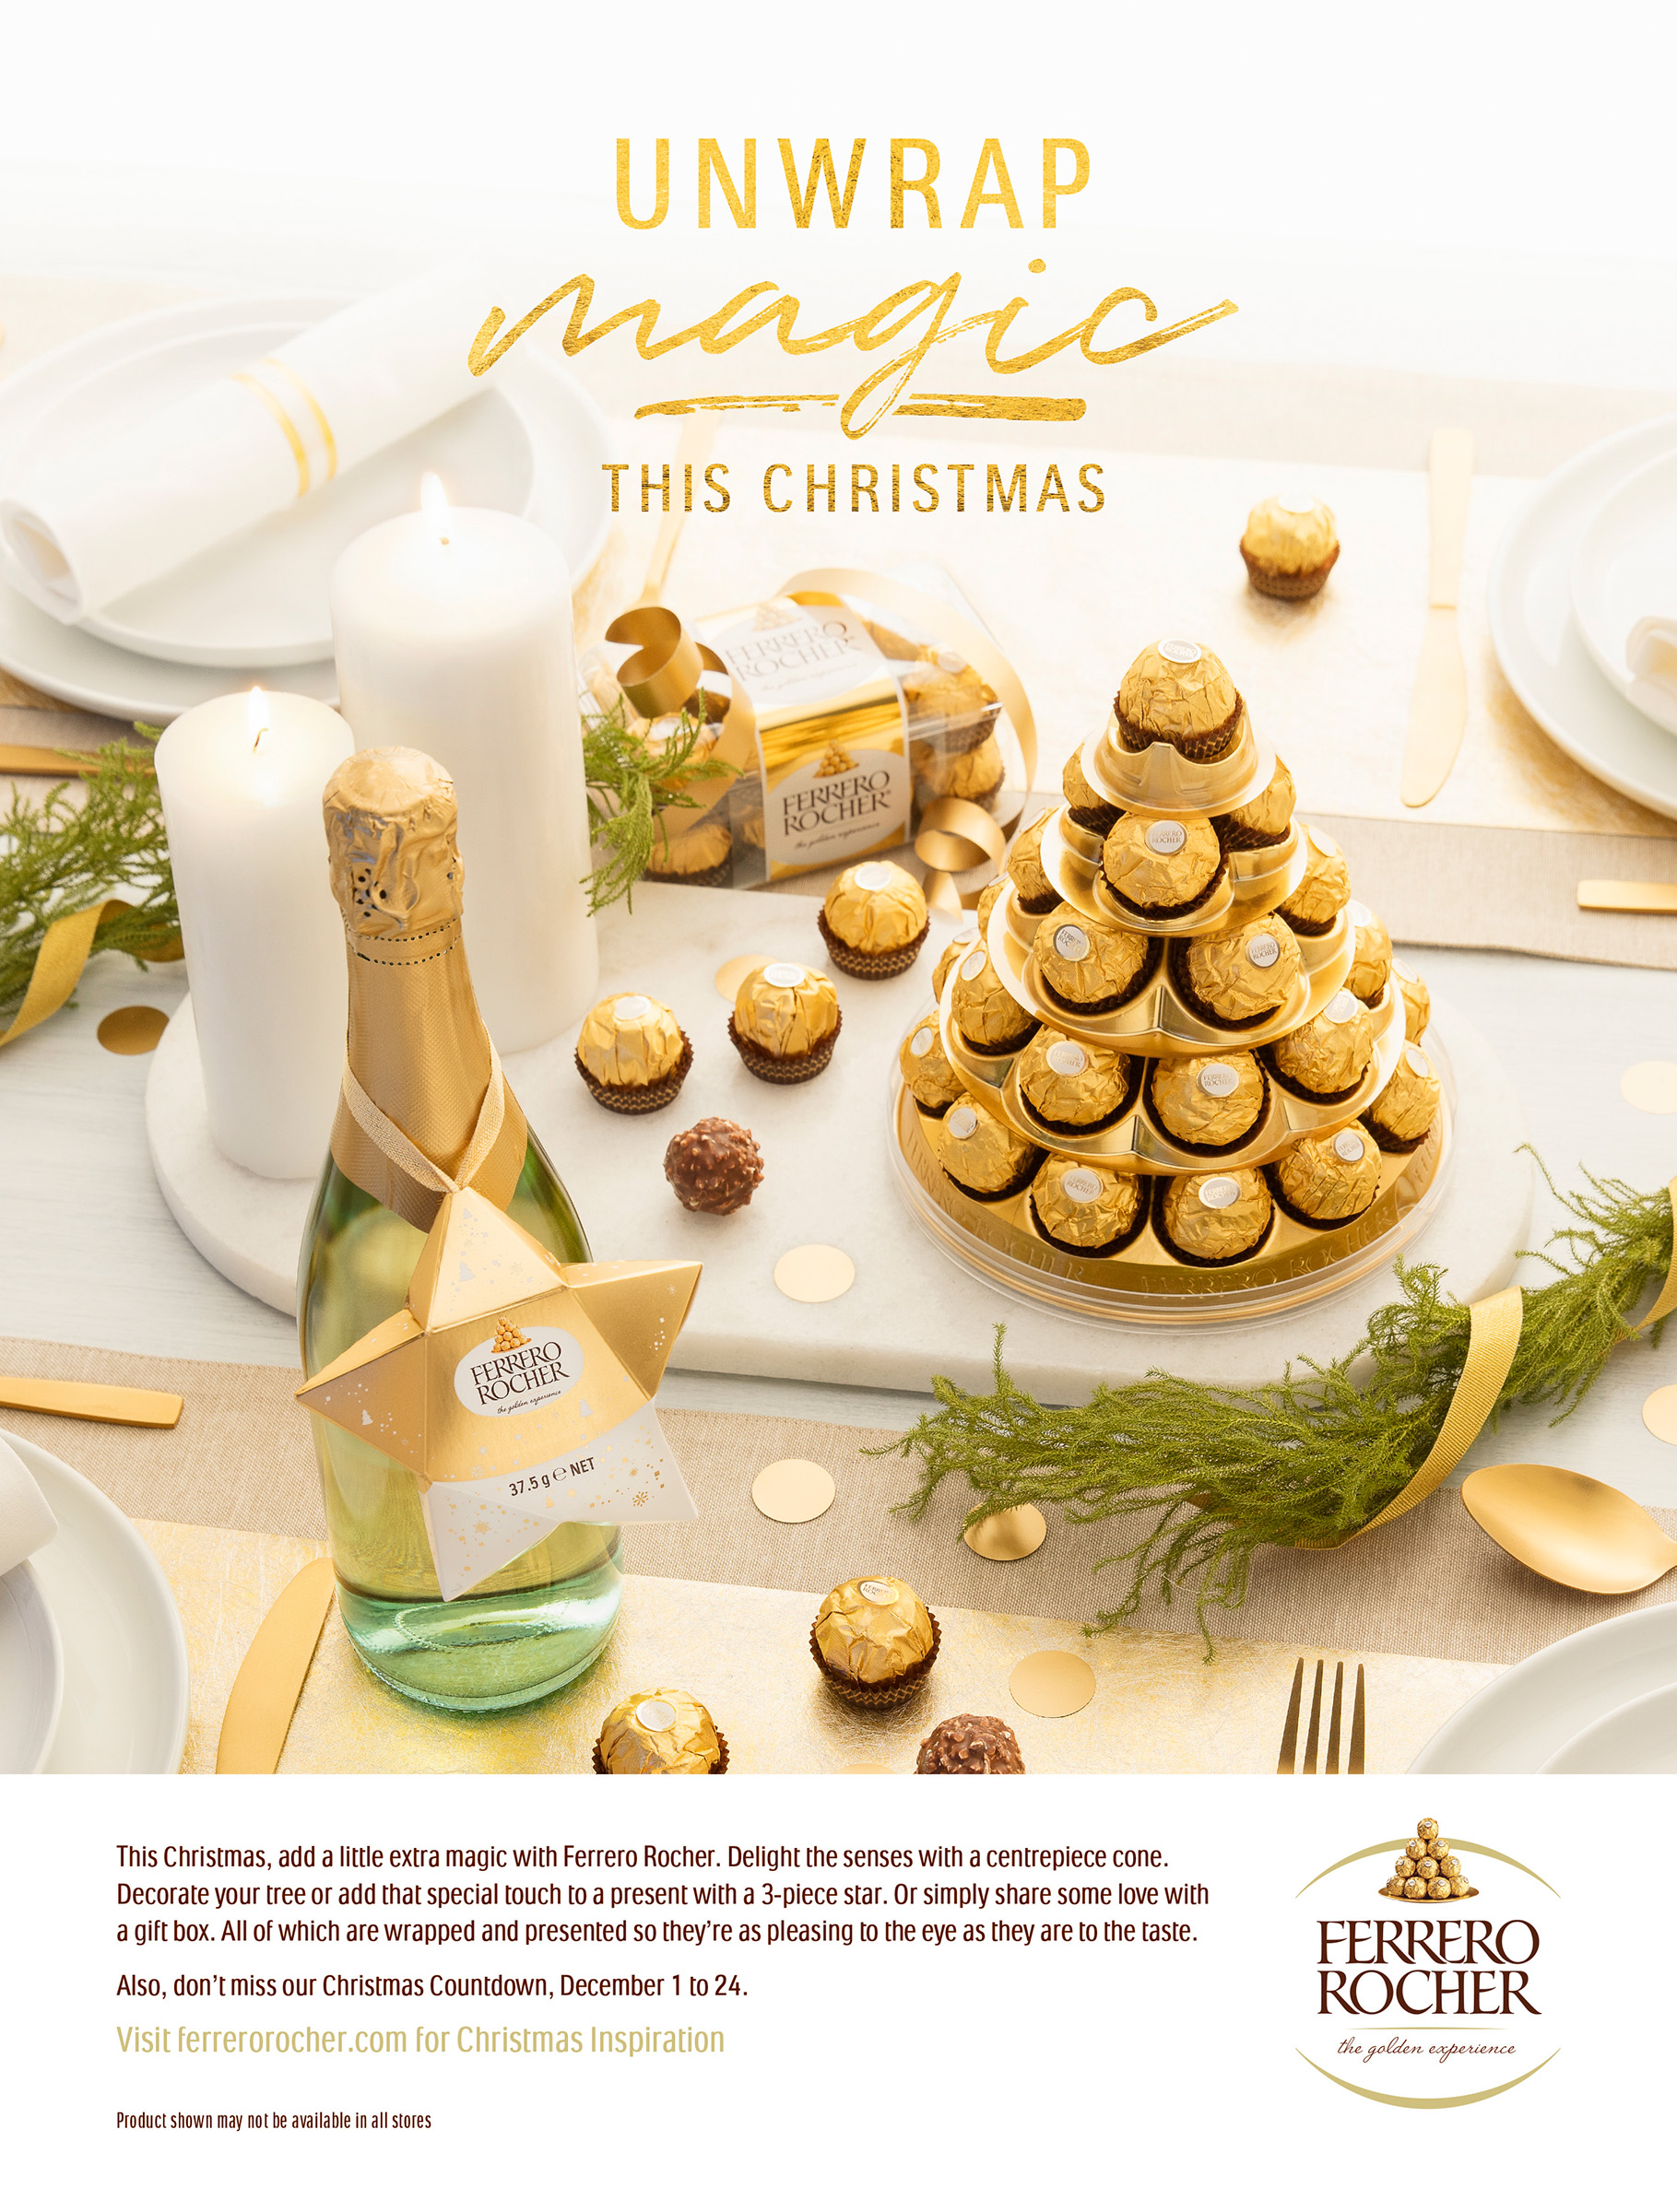 Advertising studio product food photography for Ferrero Rocher of Christmas unwrap magic campaign